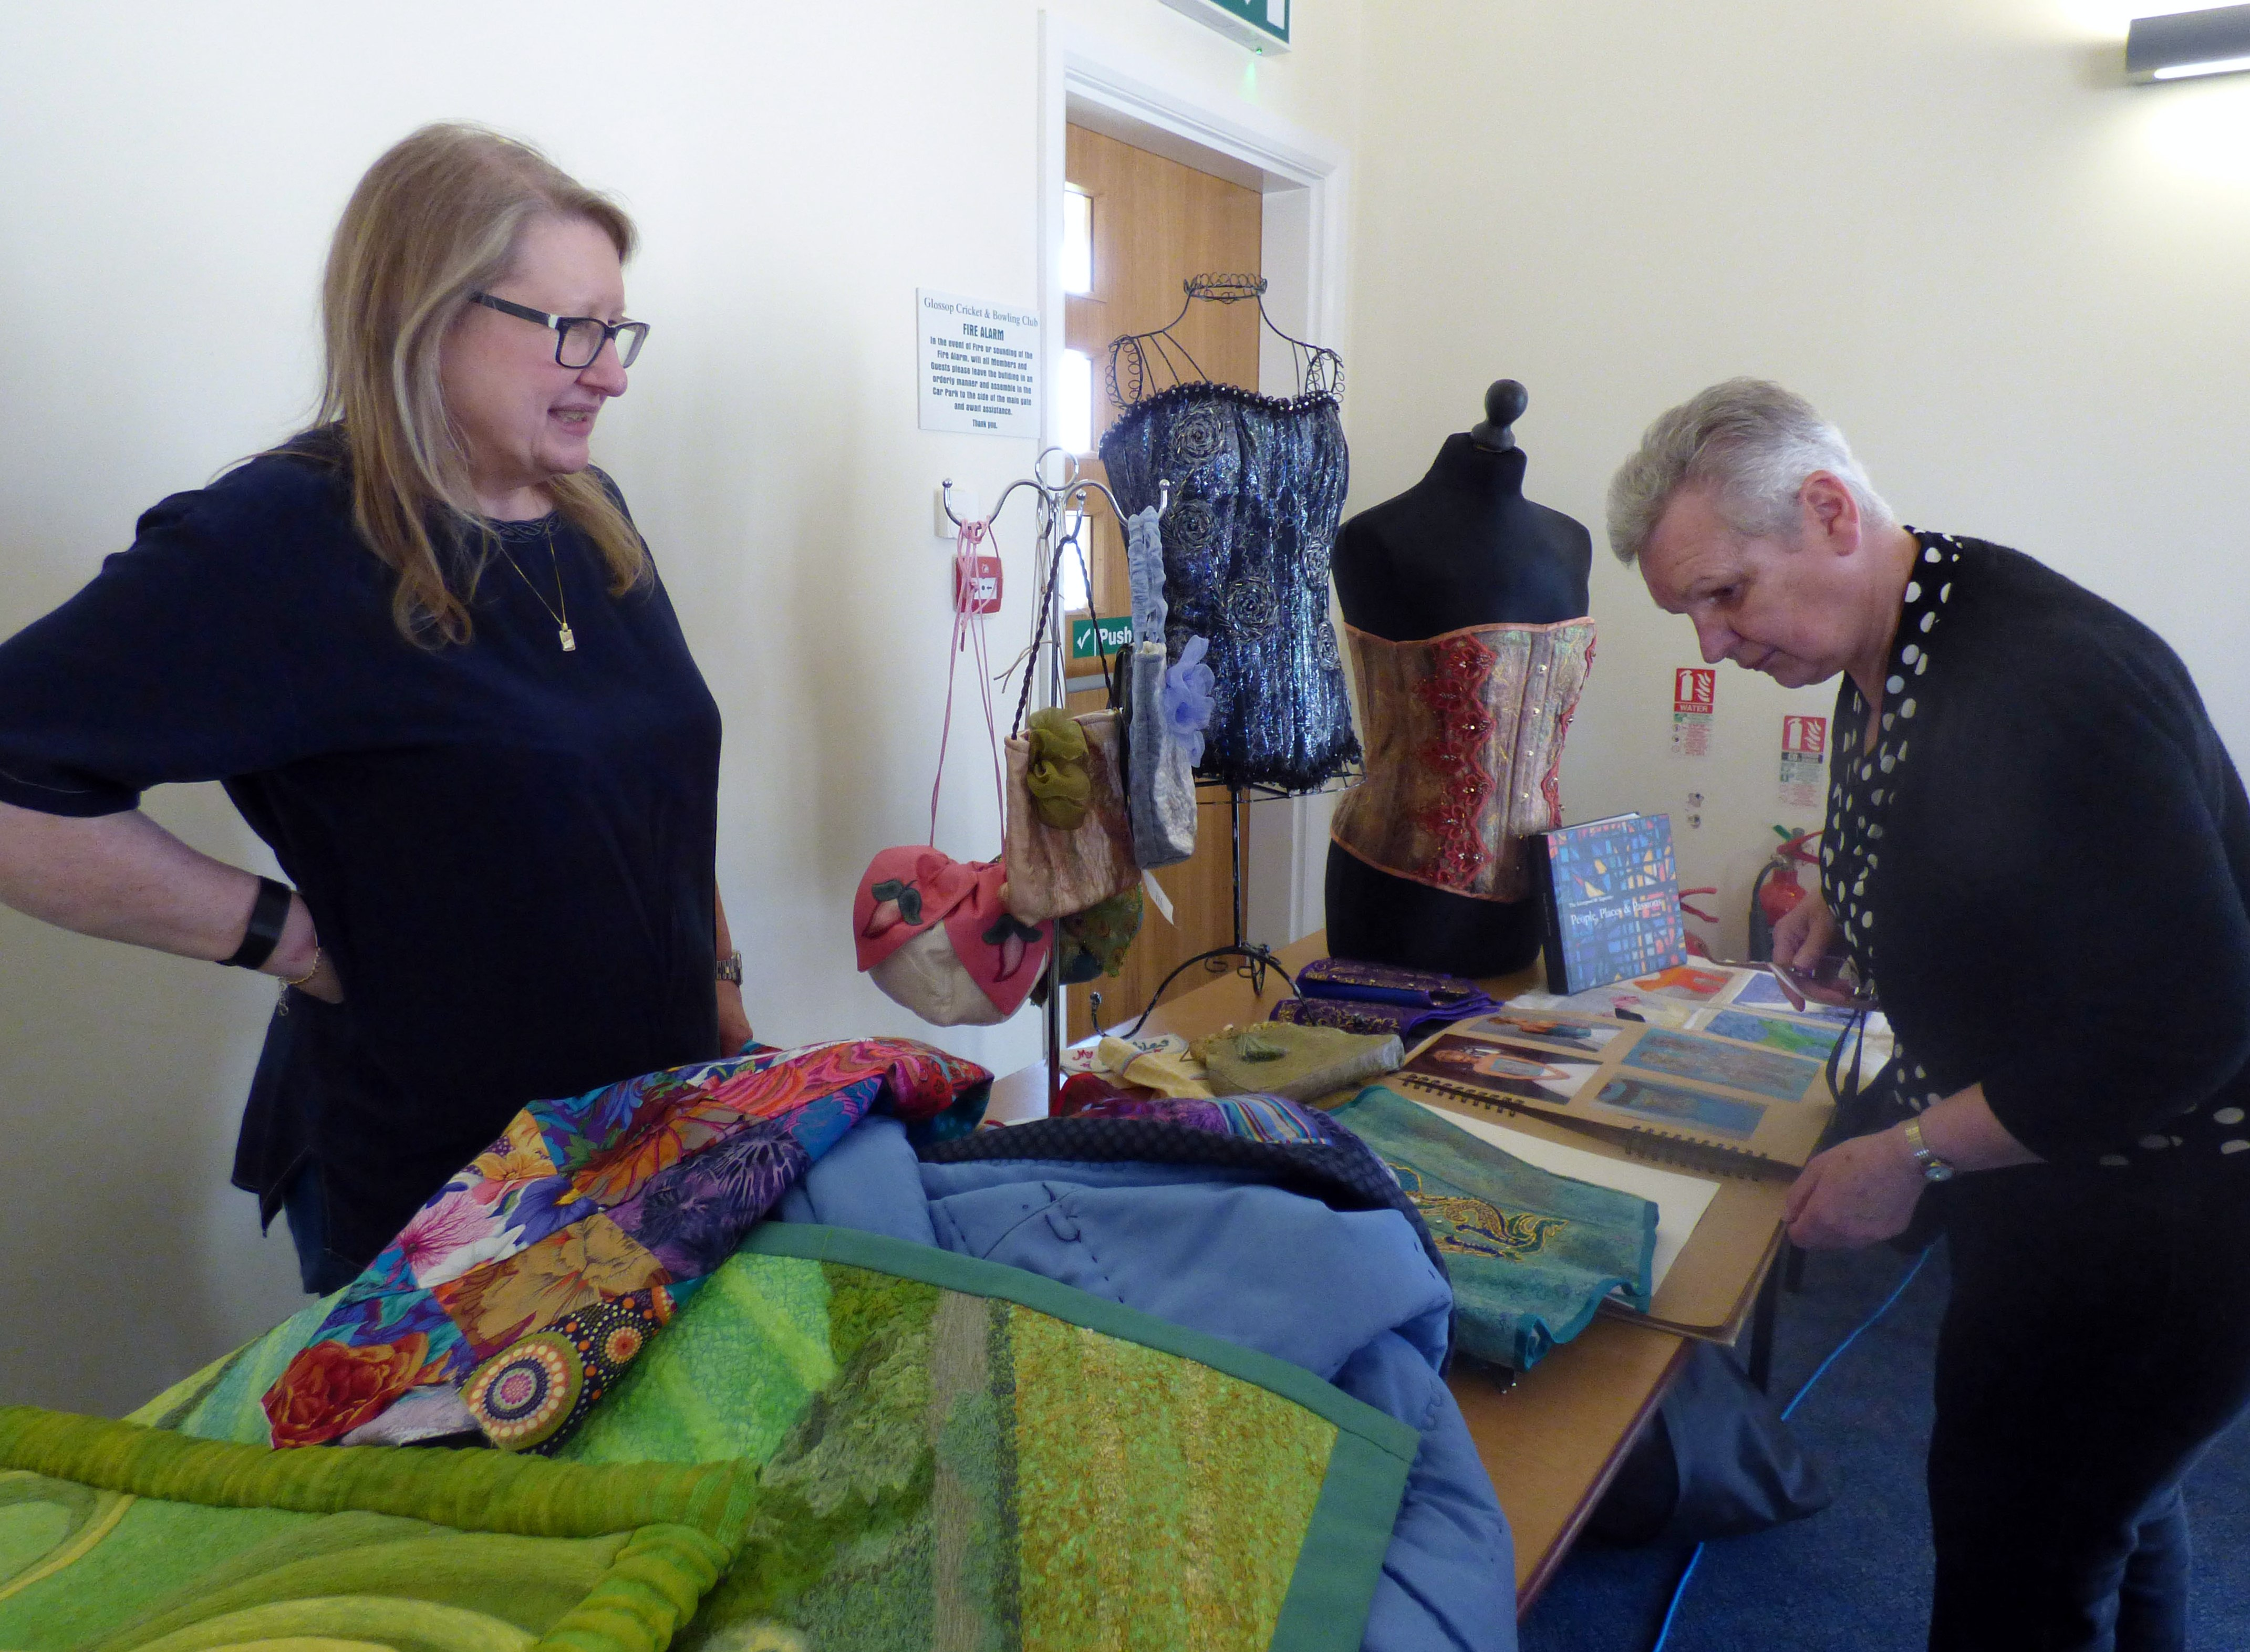 Gill Roberts showing her textiles to a member of Glossop EG, May 2017